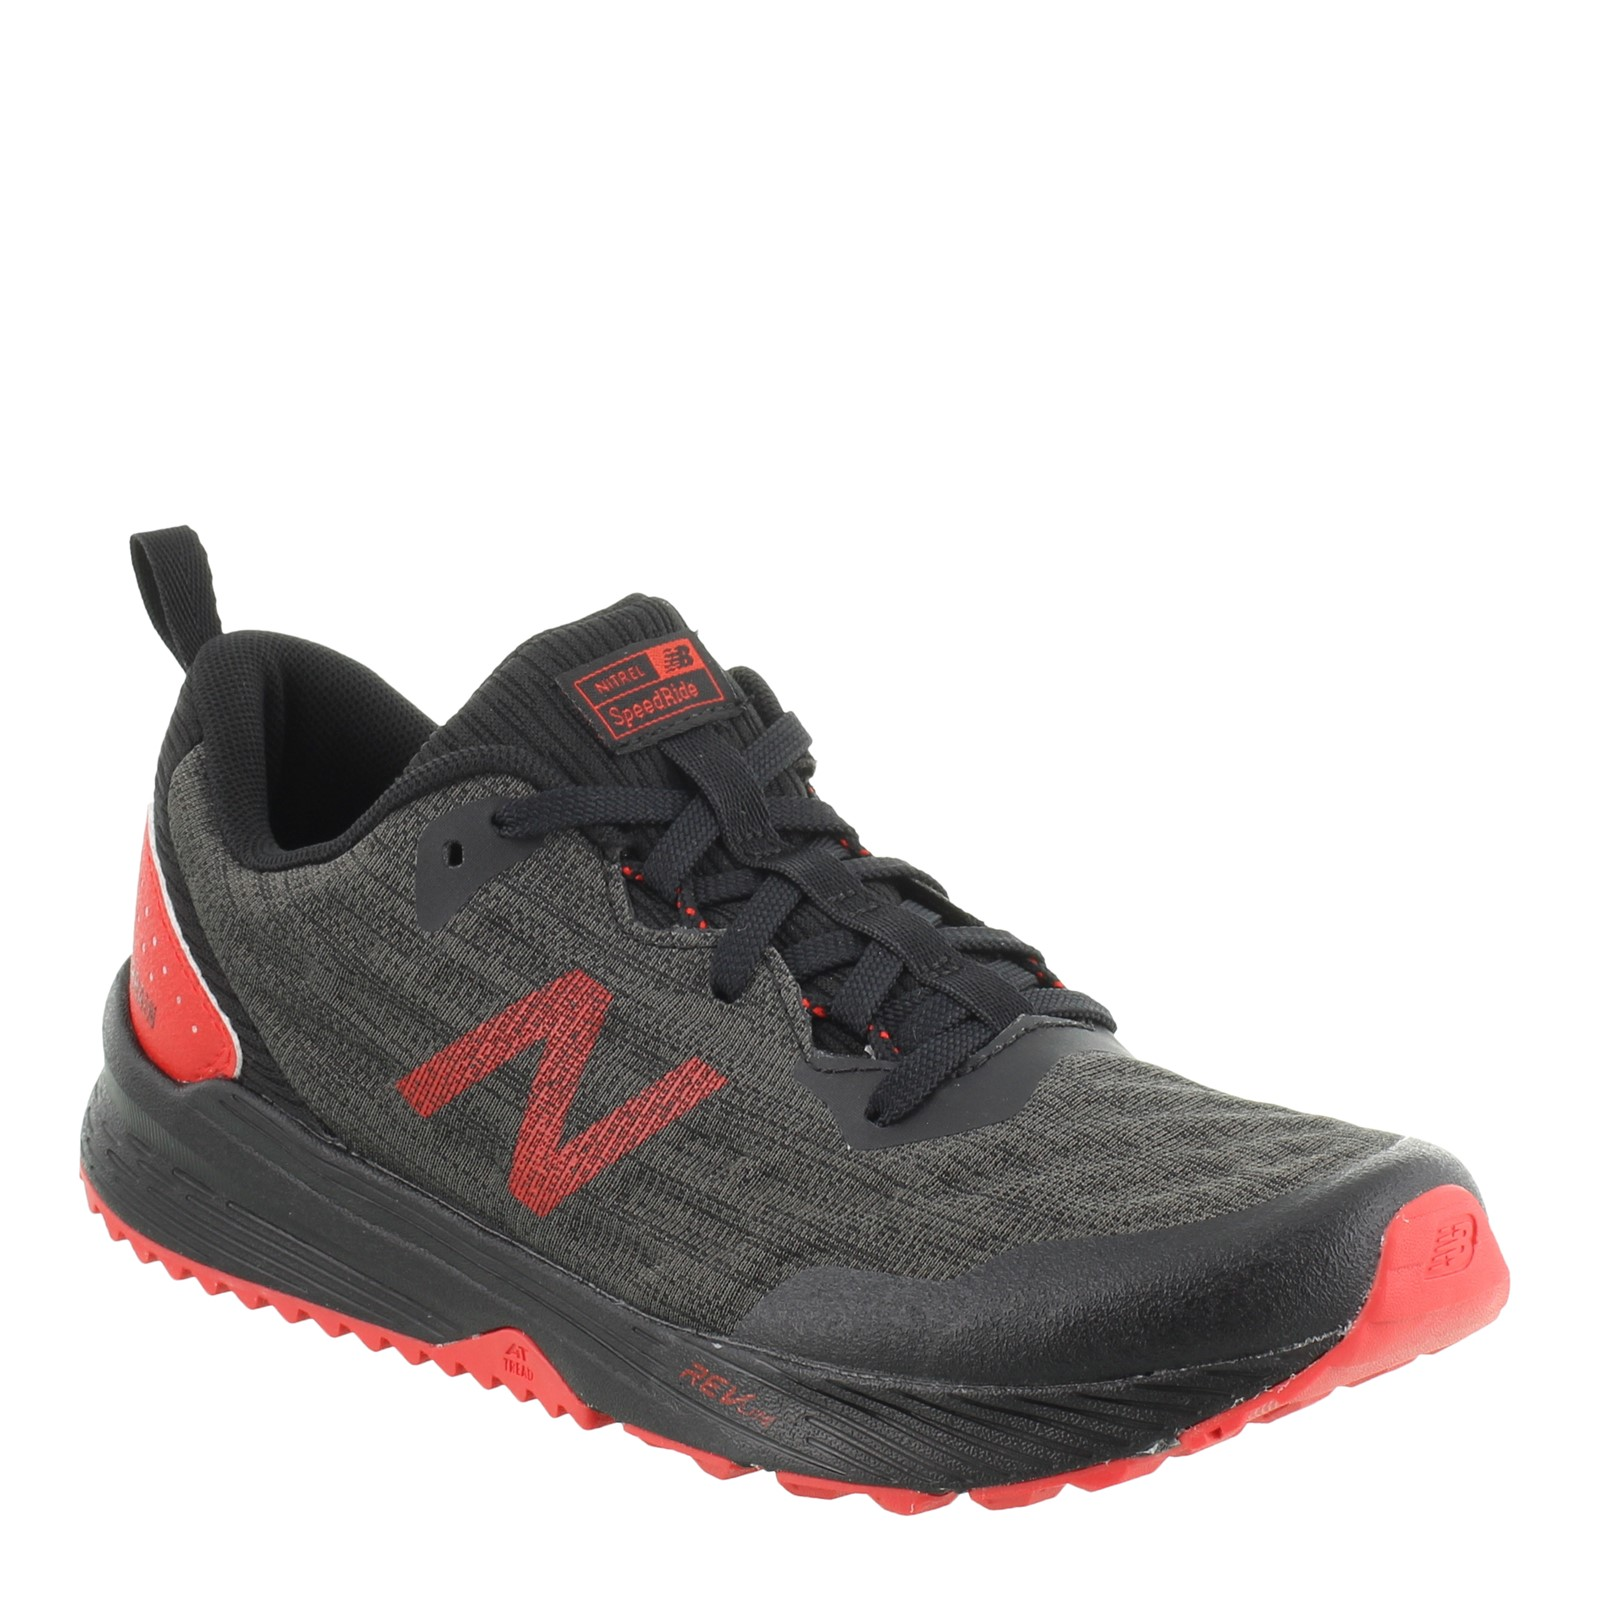 Boy's New Balance, NGR Fuelcore Sneaker - Little Kid & Big Kid